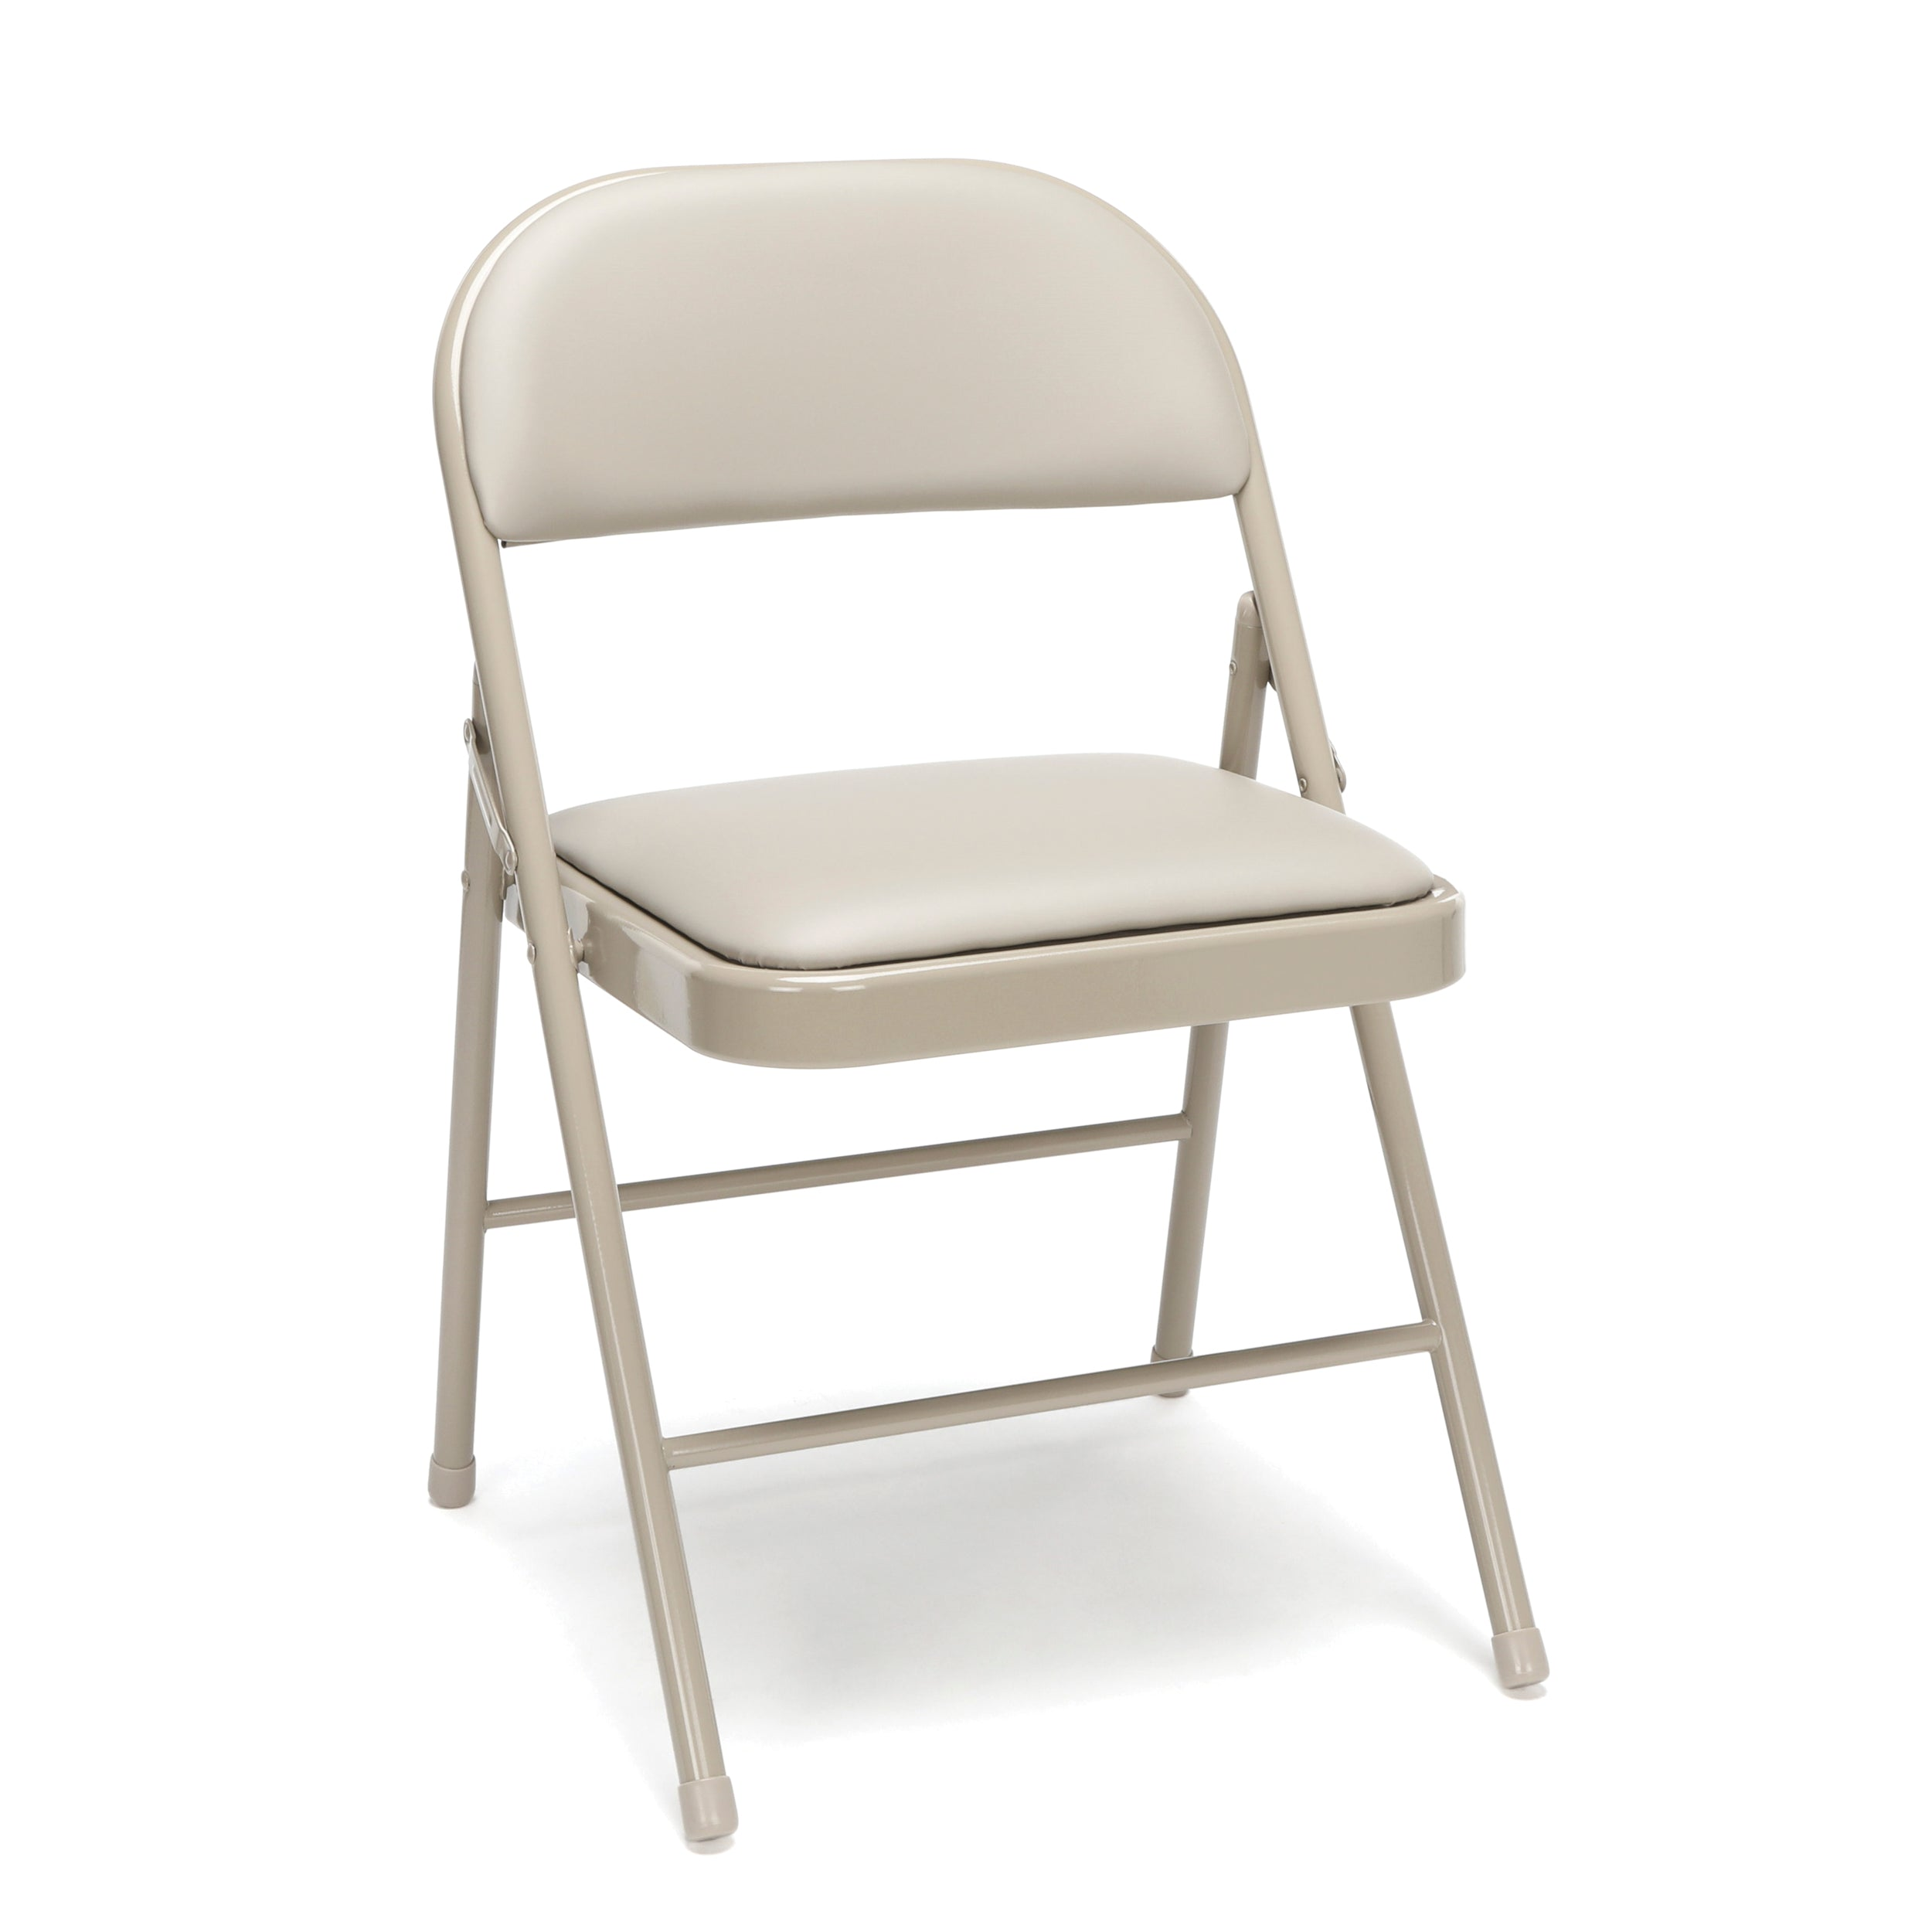 Model ESS-8210 Essentials By OFM 4-Pack Padded Metal Folding Chairs